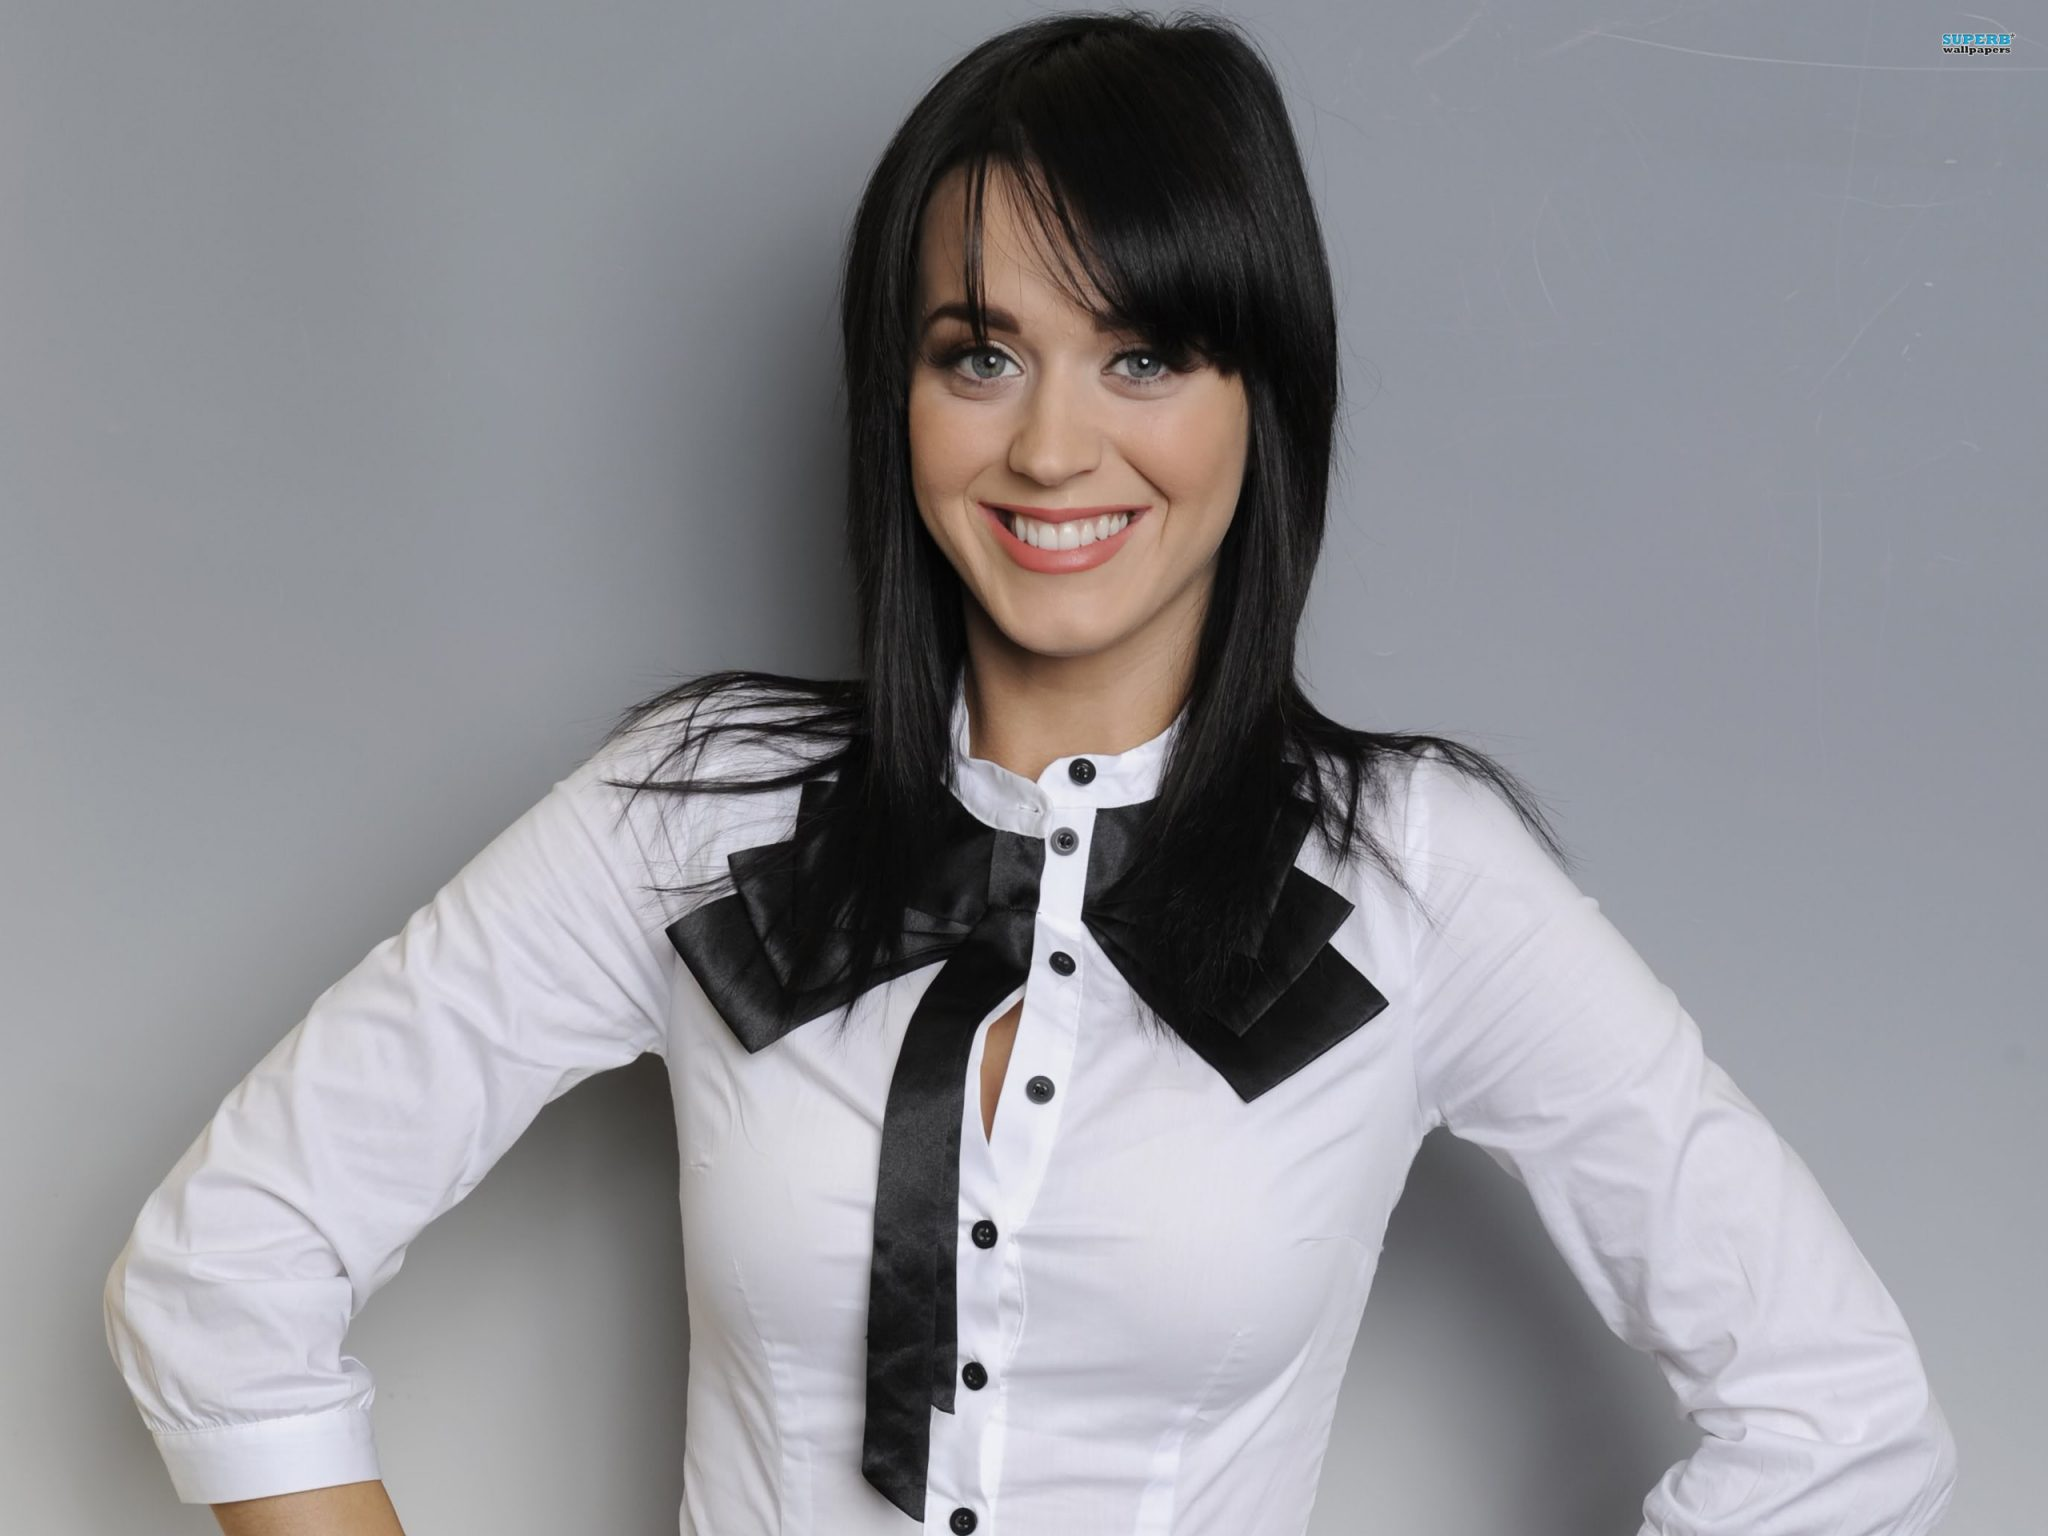 bio, biography, hollywood, boyfriend, husband, celebrity, facebook, fashion, female, Actress, gallery, images, hot photos, hot pics, hot pictures, images, america, model, news, photos, pic, pictures, profile, Katy Perry, twitter, wallpapers, wiki